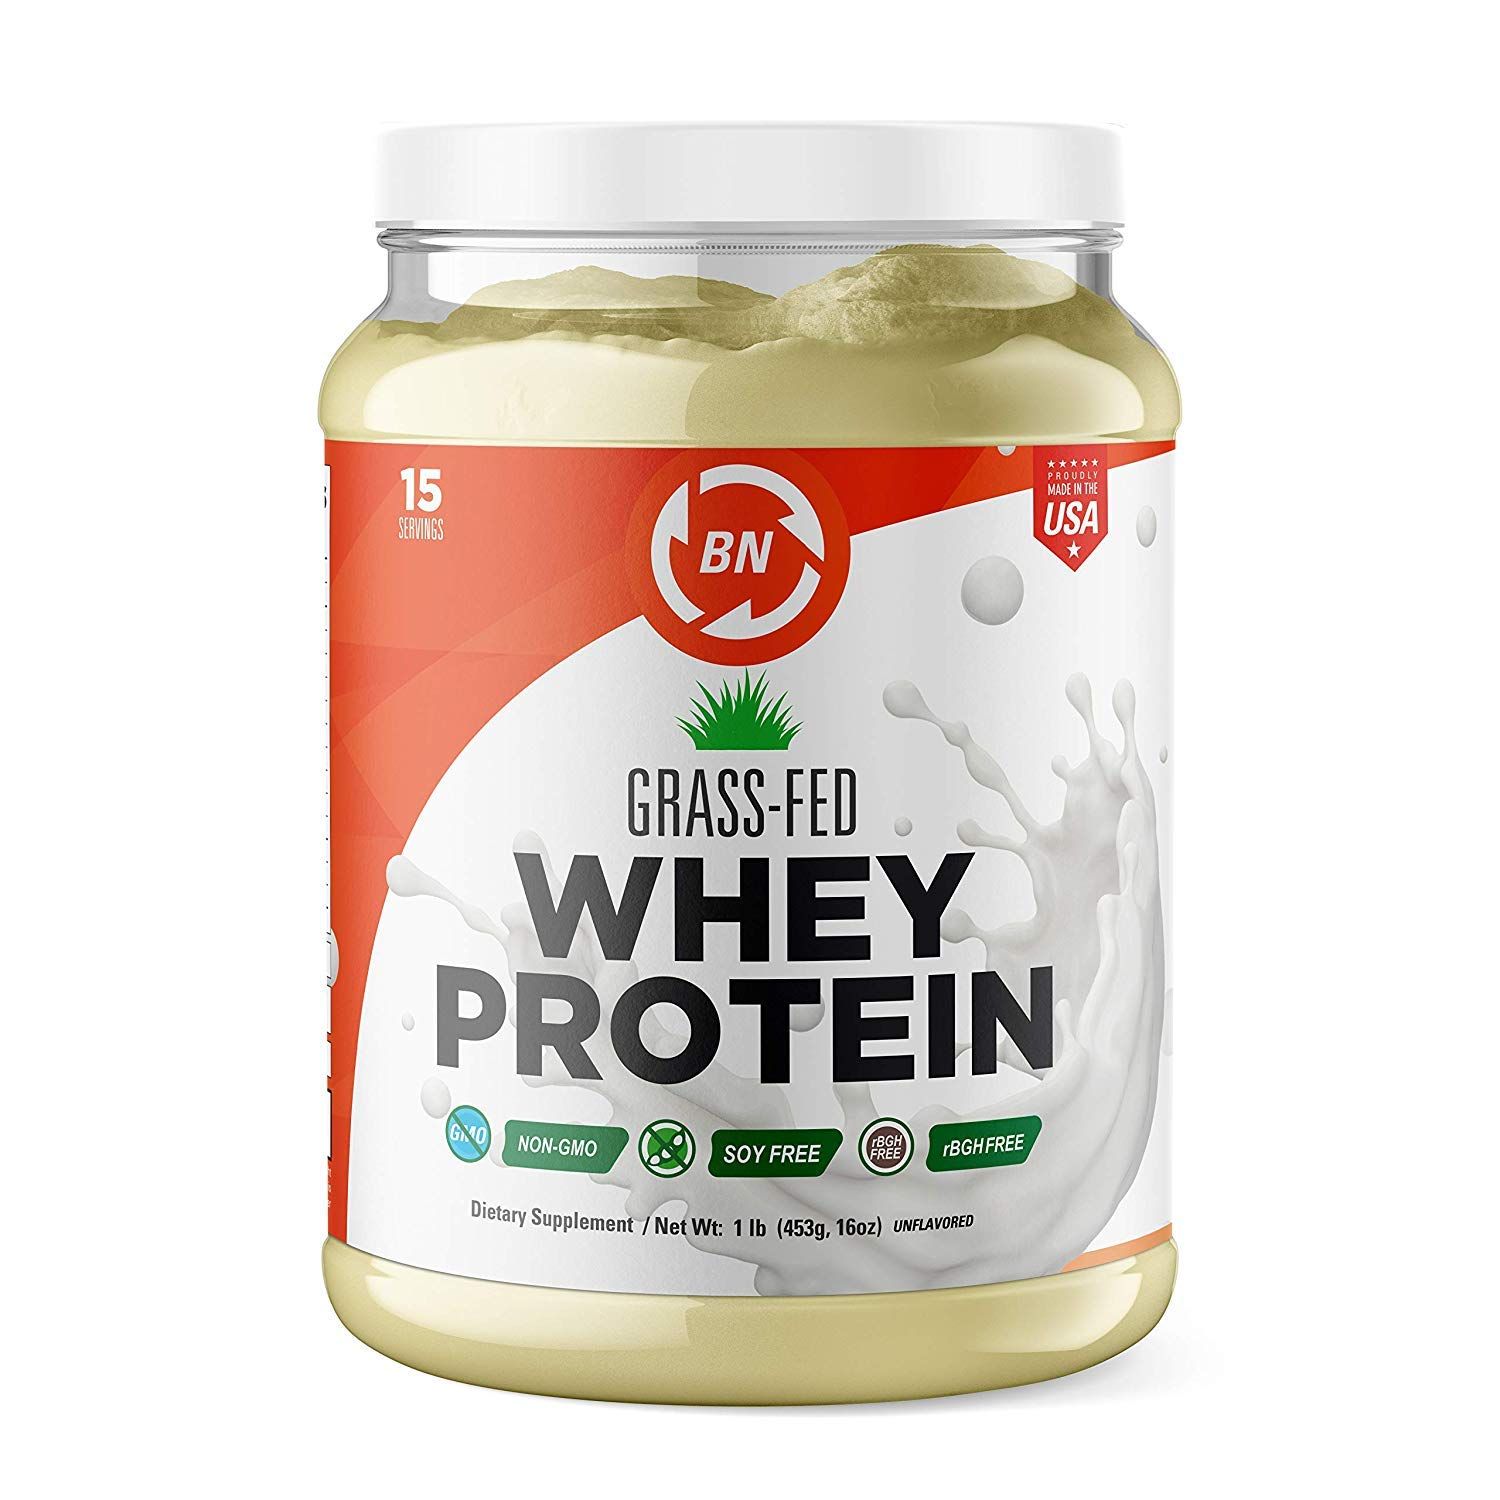 Grass Fed Whey Protein - 100% Pure, Natural & Raw - 24g High Protein - 1 lb/15-5lb/75 Servings - Cold Processed Undenatured - Non-GMO - rBGH-Free - High Quality Wisconsin USA (1 lb) by BN Labs